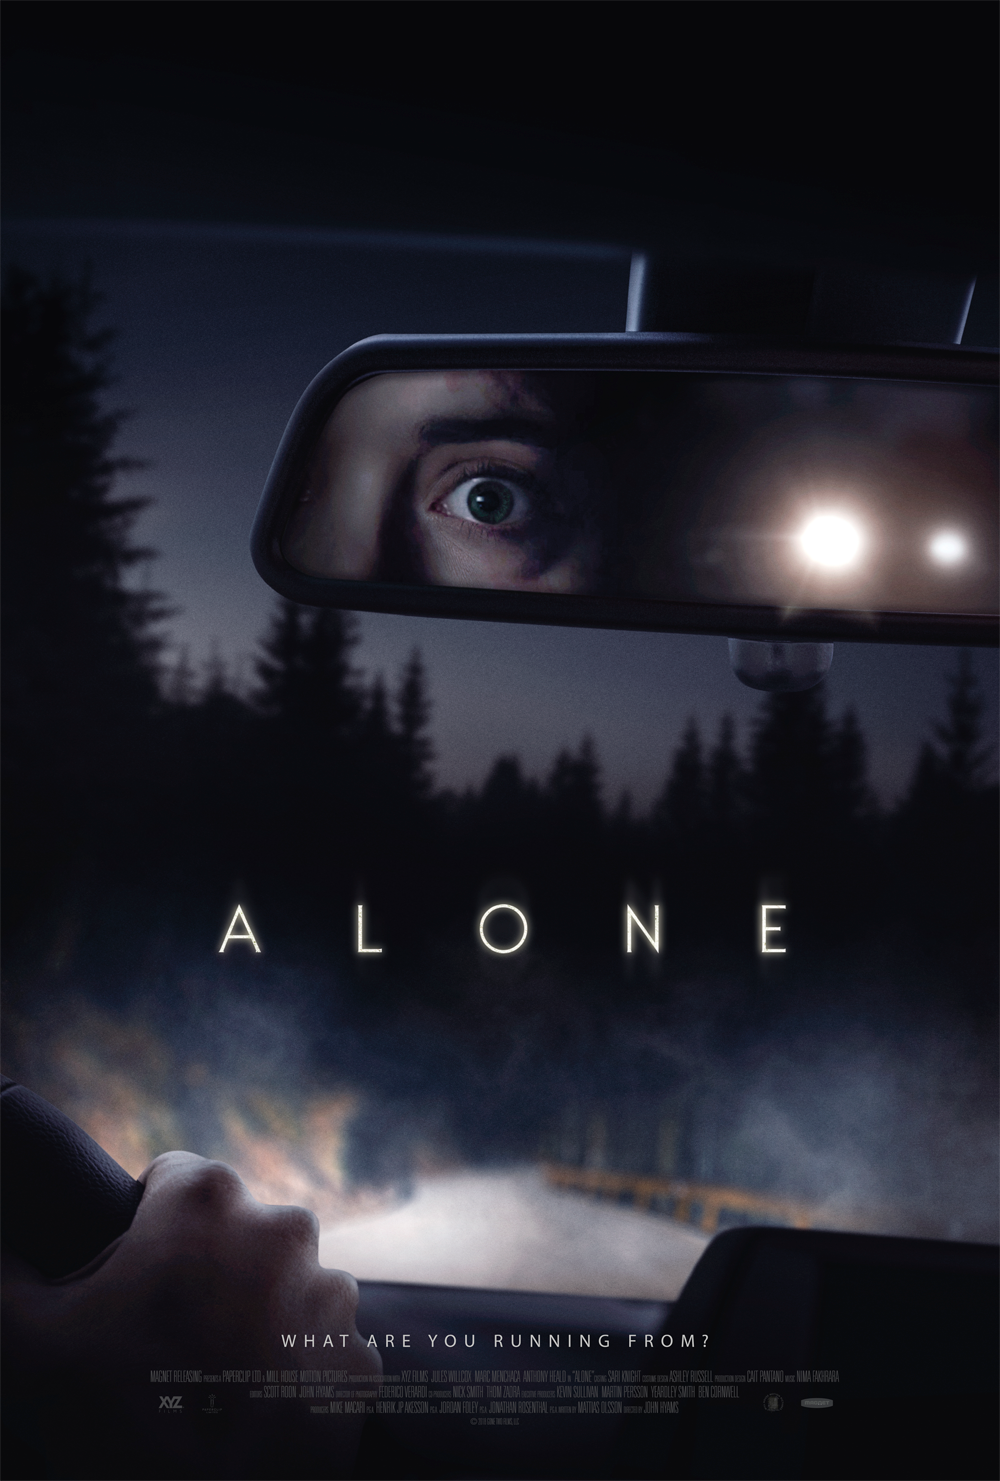 Alone Movie Poster Teases Tense New Surivival Thriller | Collider